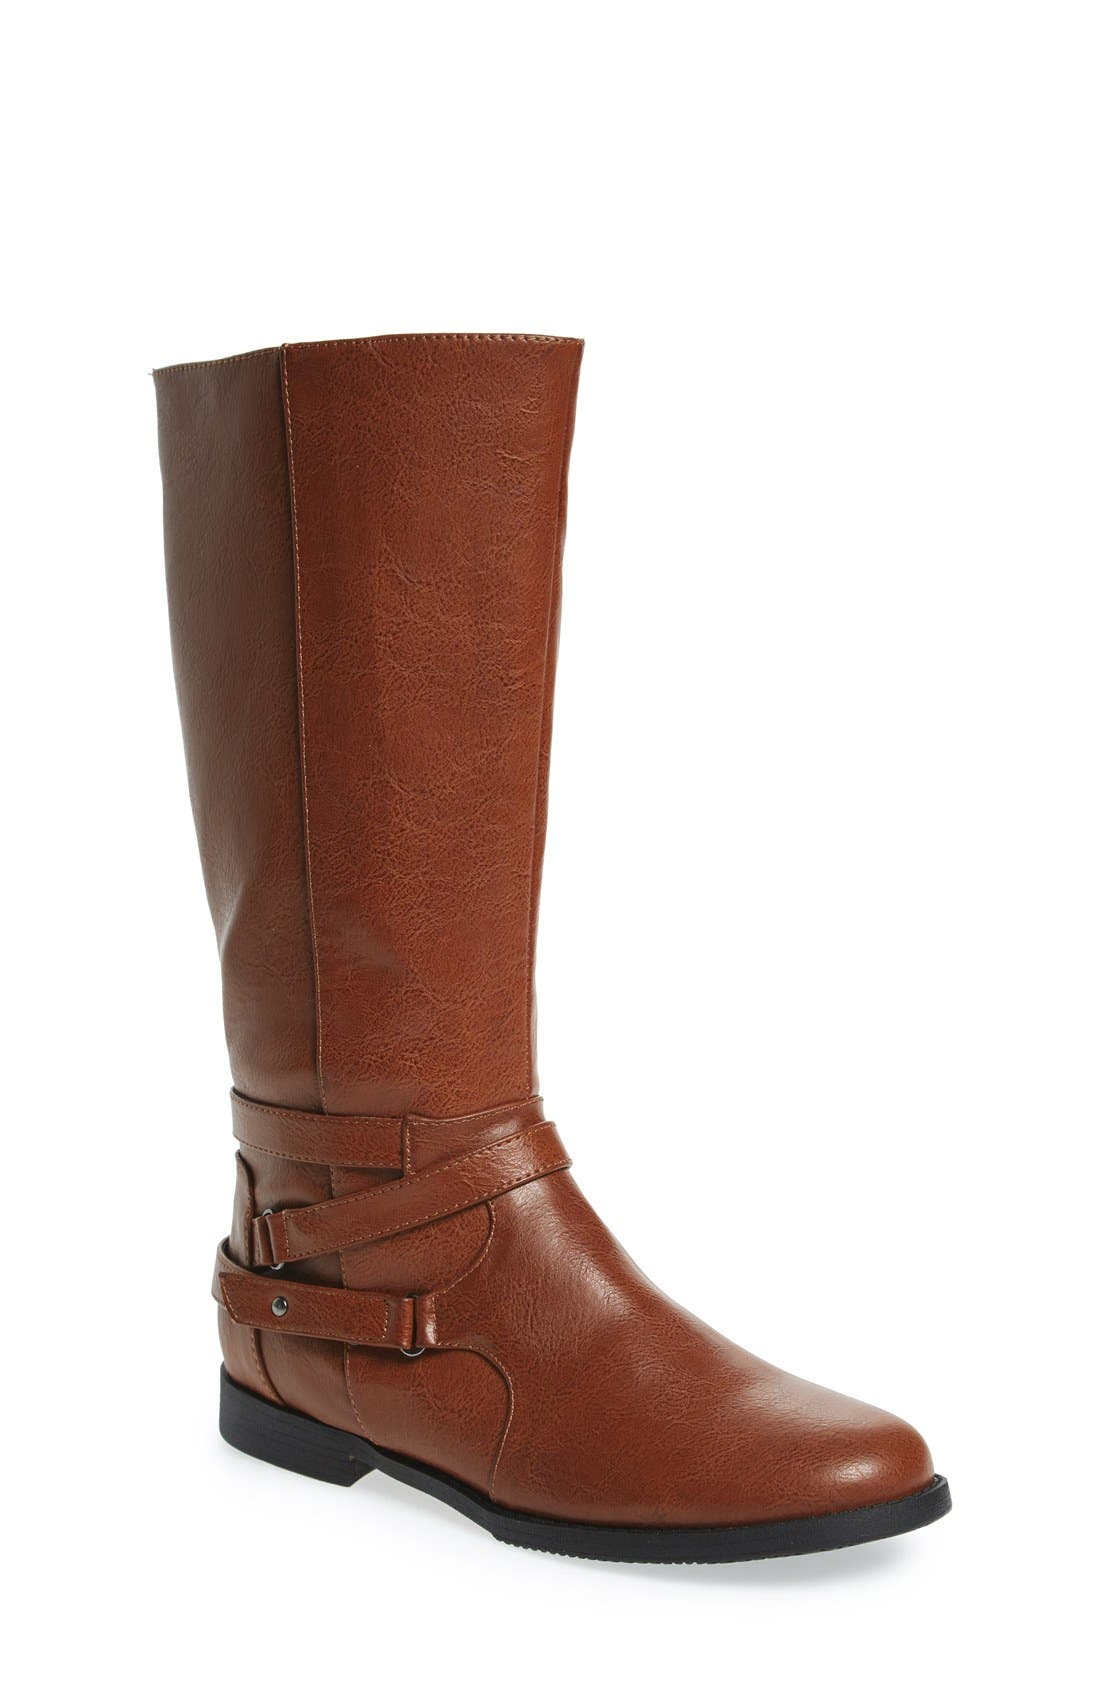 Alternate Image 1 Selected - Kenneth Cole New York 'Kennedy' Riding Boot (Toddler, Little Kid & Big Kid)